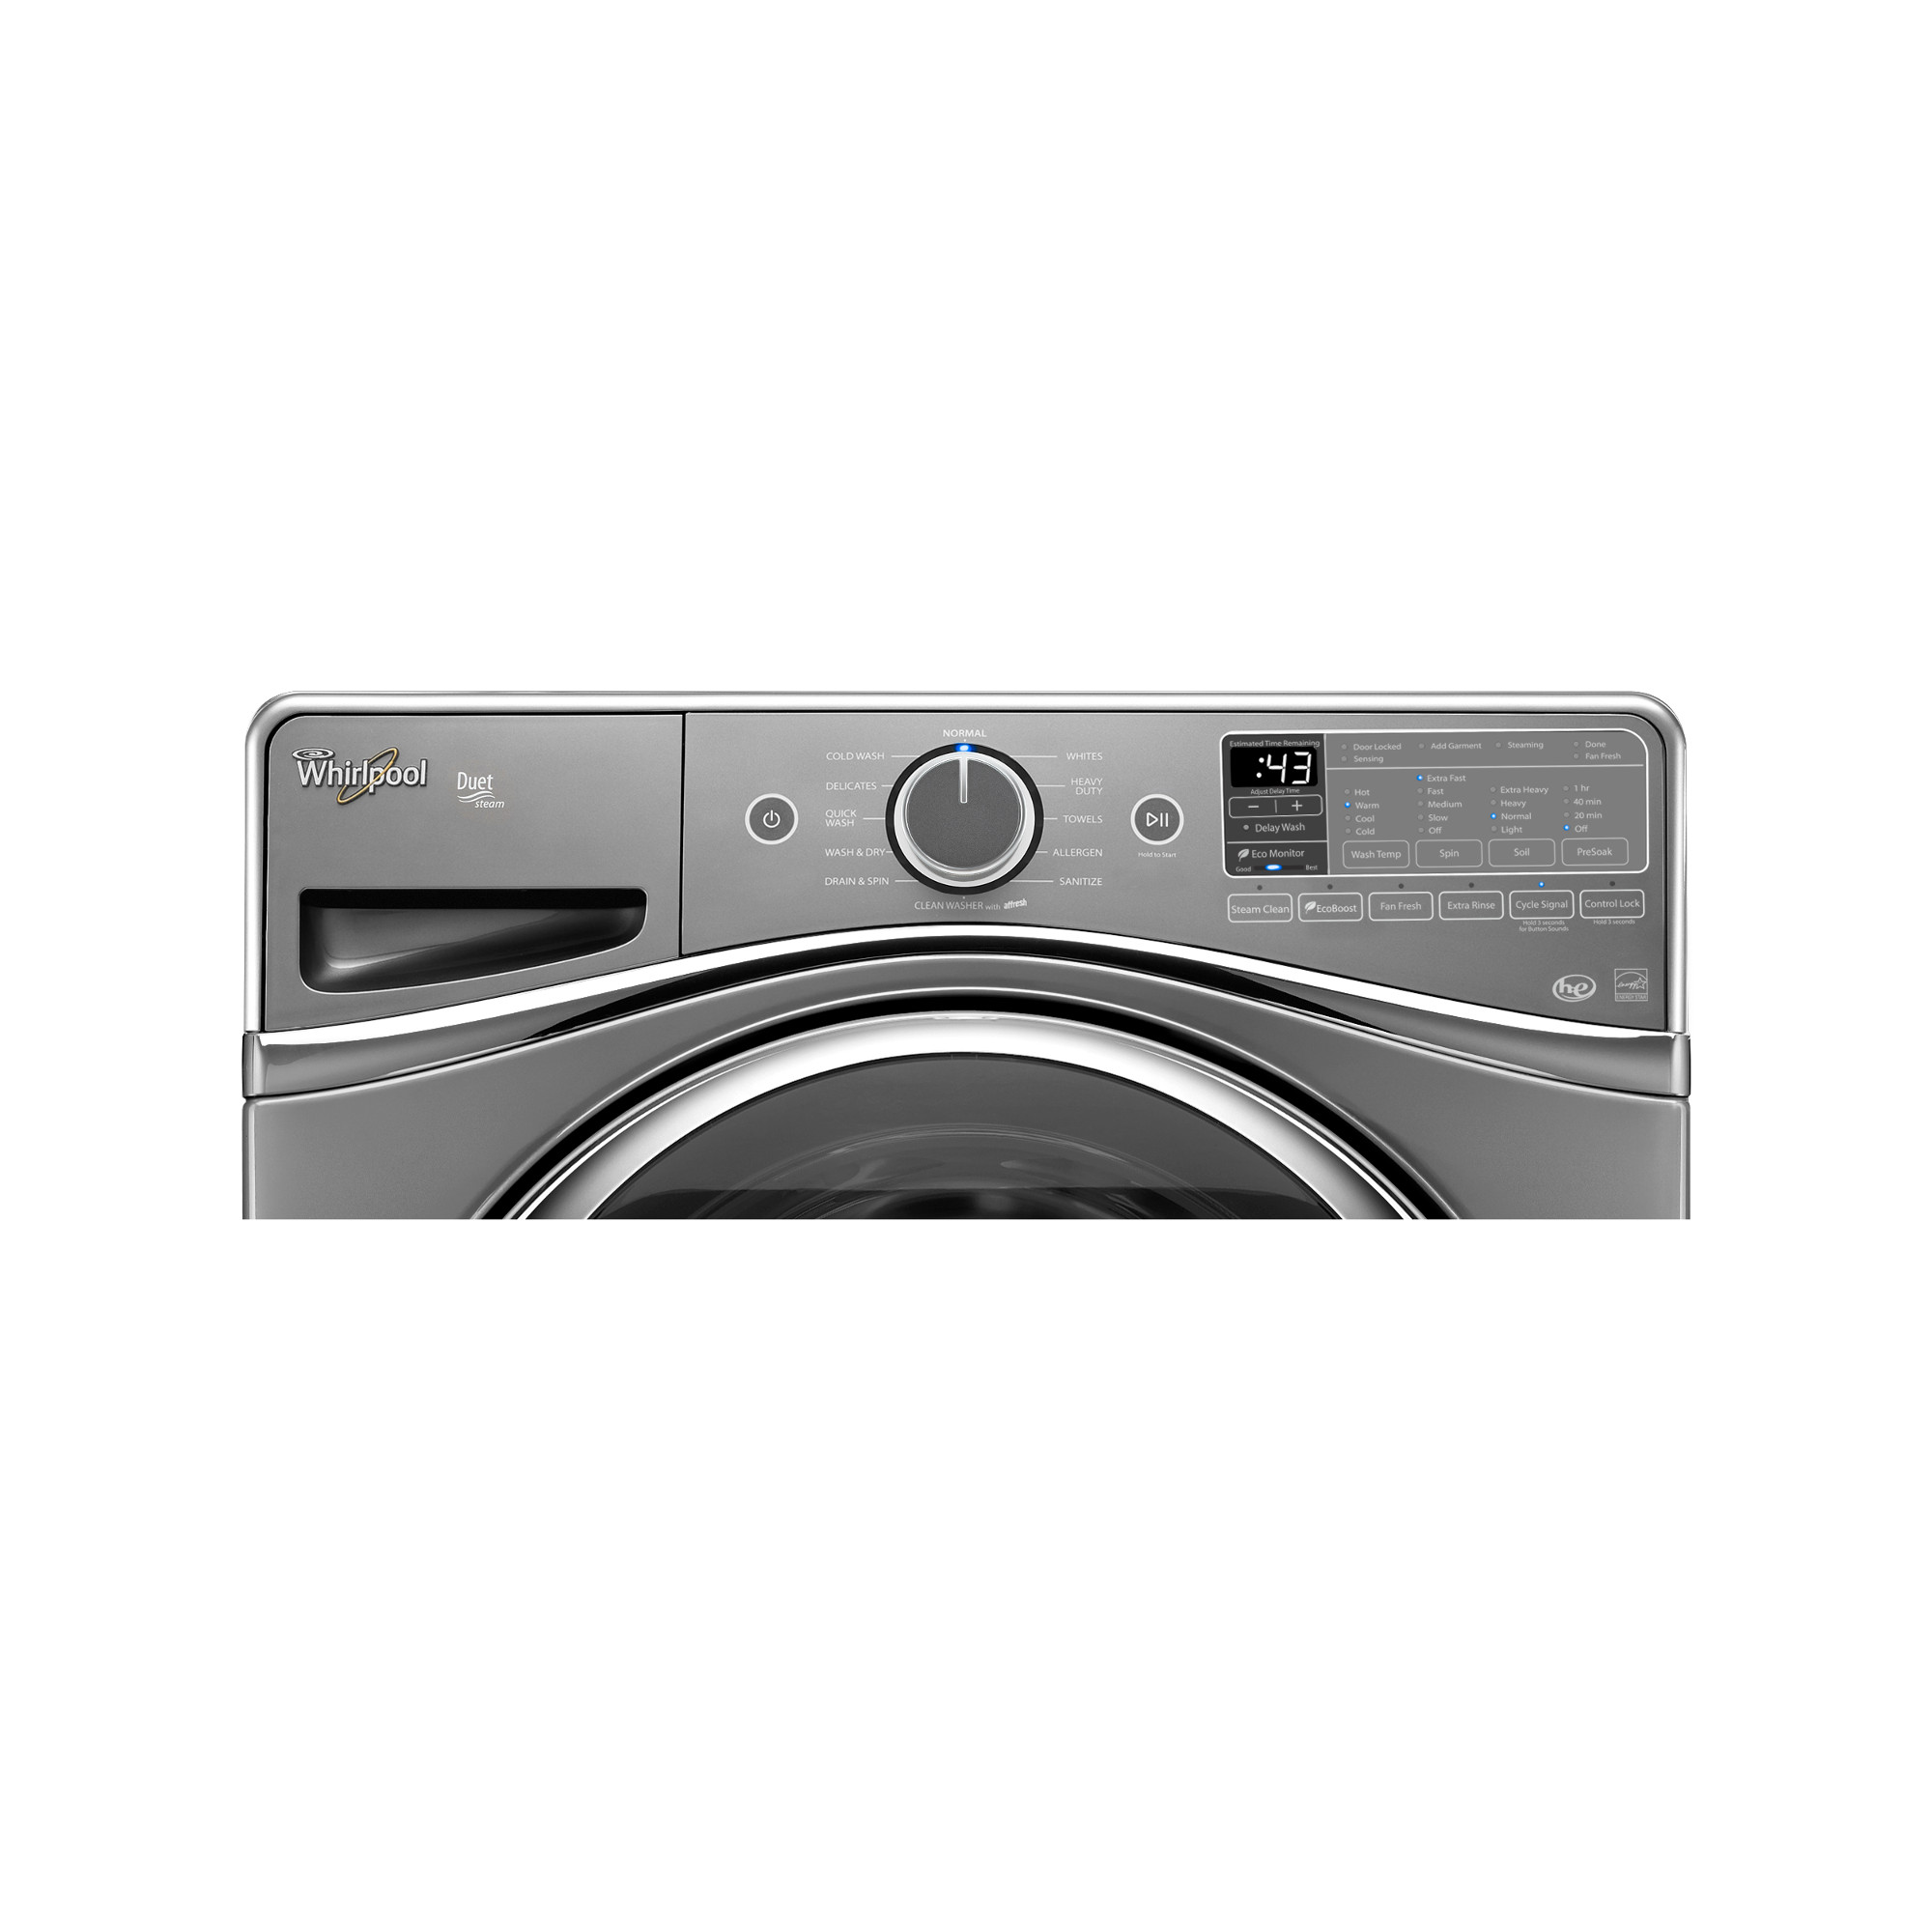 Whirlpool WFW95HEDC 4.5 cu. ft. Duet® Front-Load Washer w/ Wash and Dry Cycle - Chrome Shadow